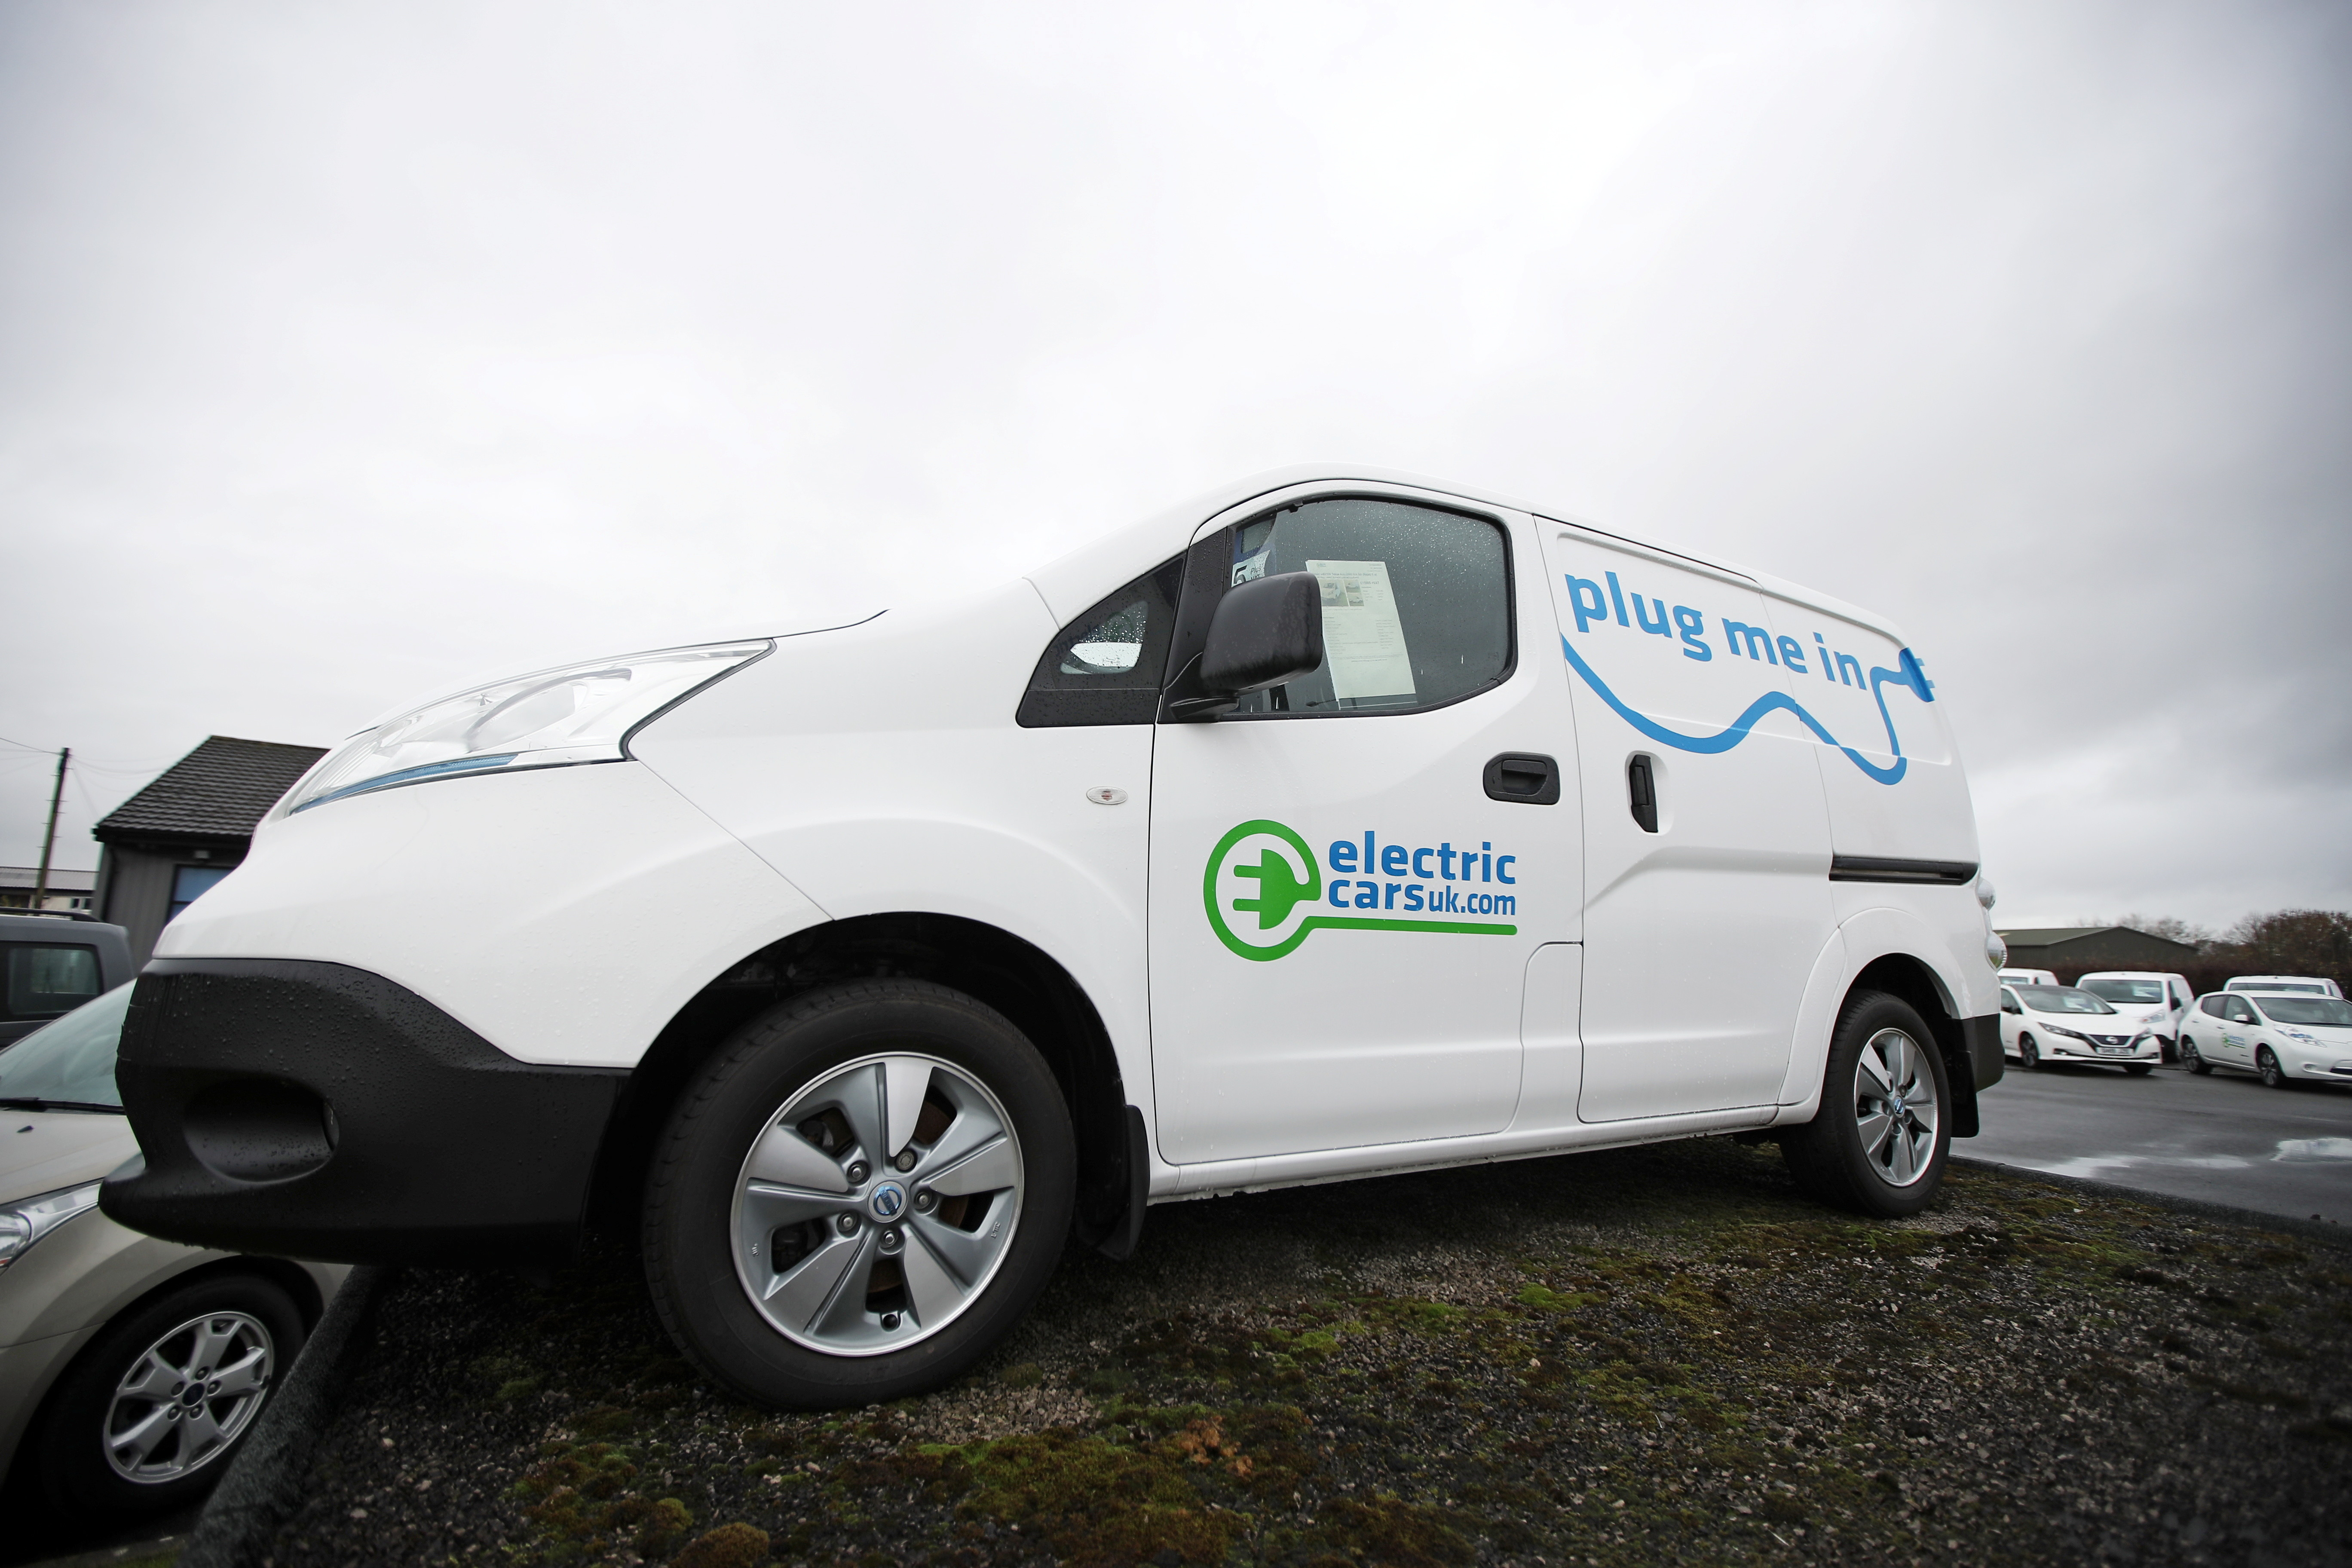 a picture of a parked electric van